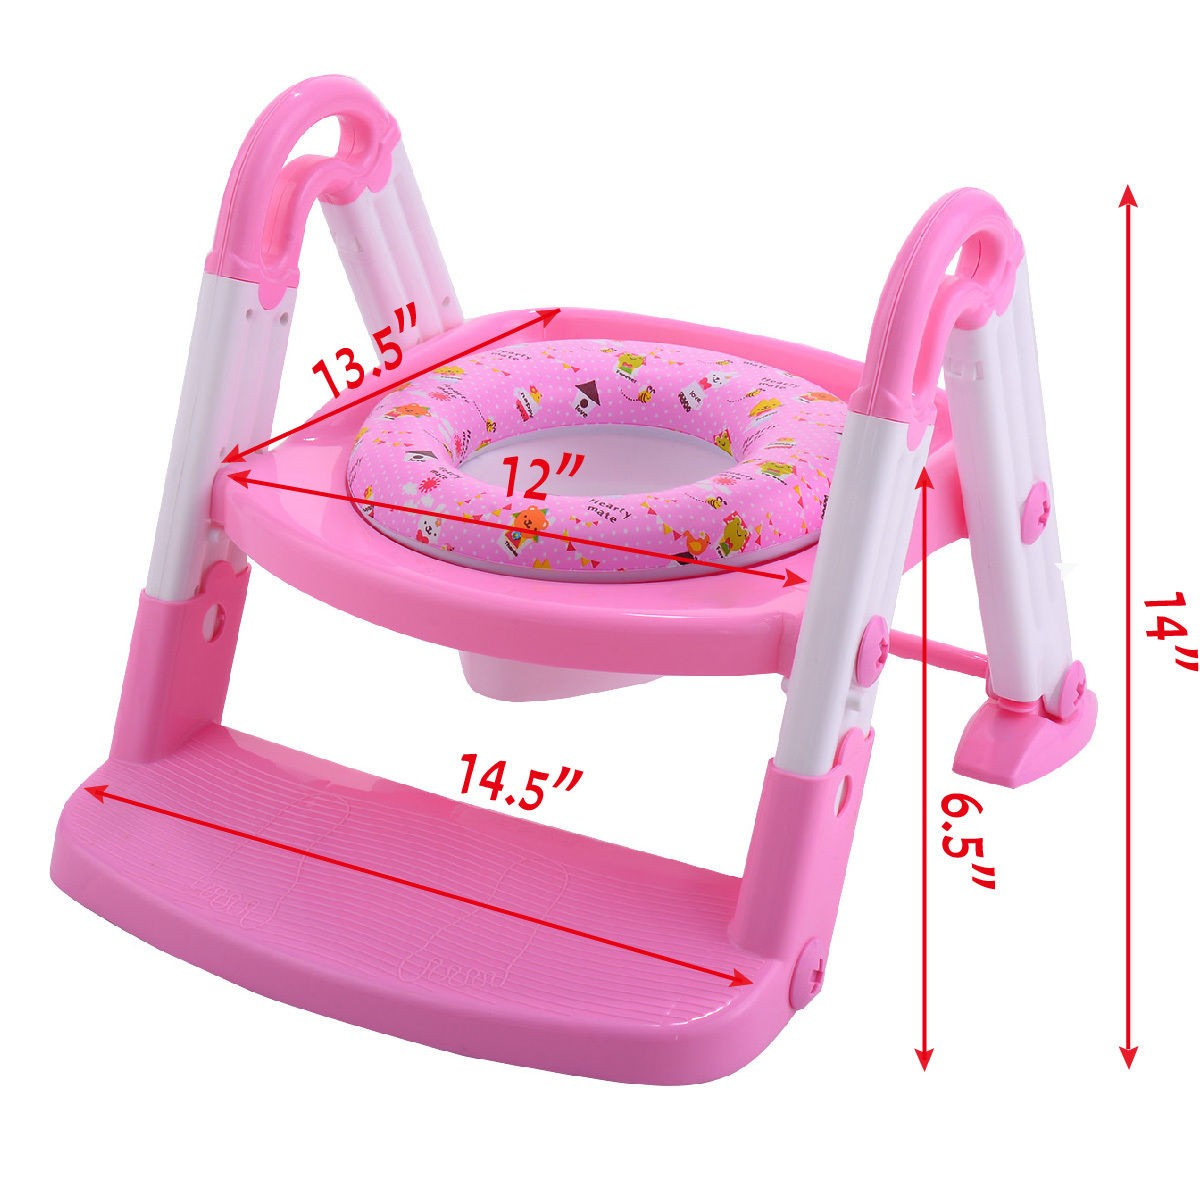 3 In 1 Fold Baby Potty Training Toilet Chair Seat Step